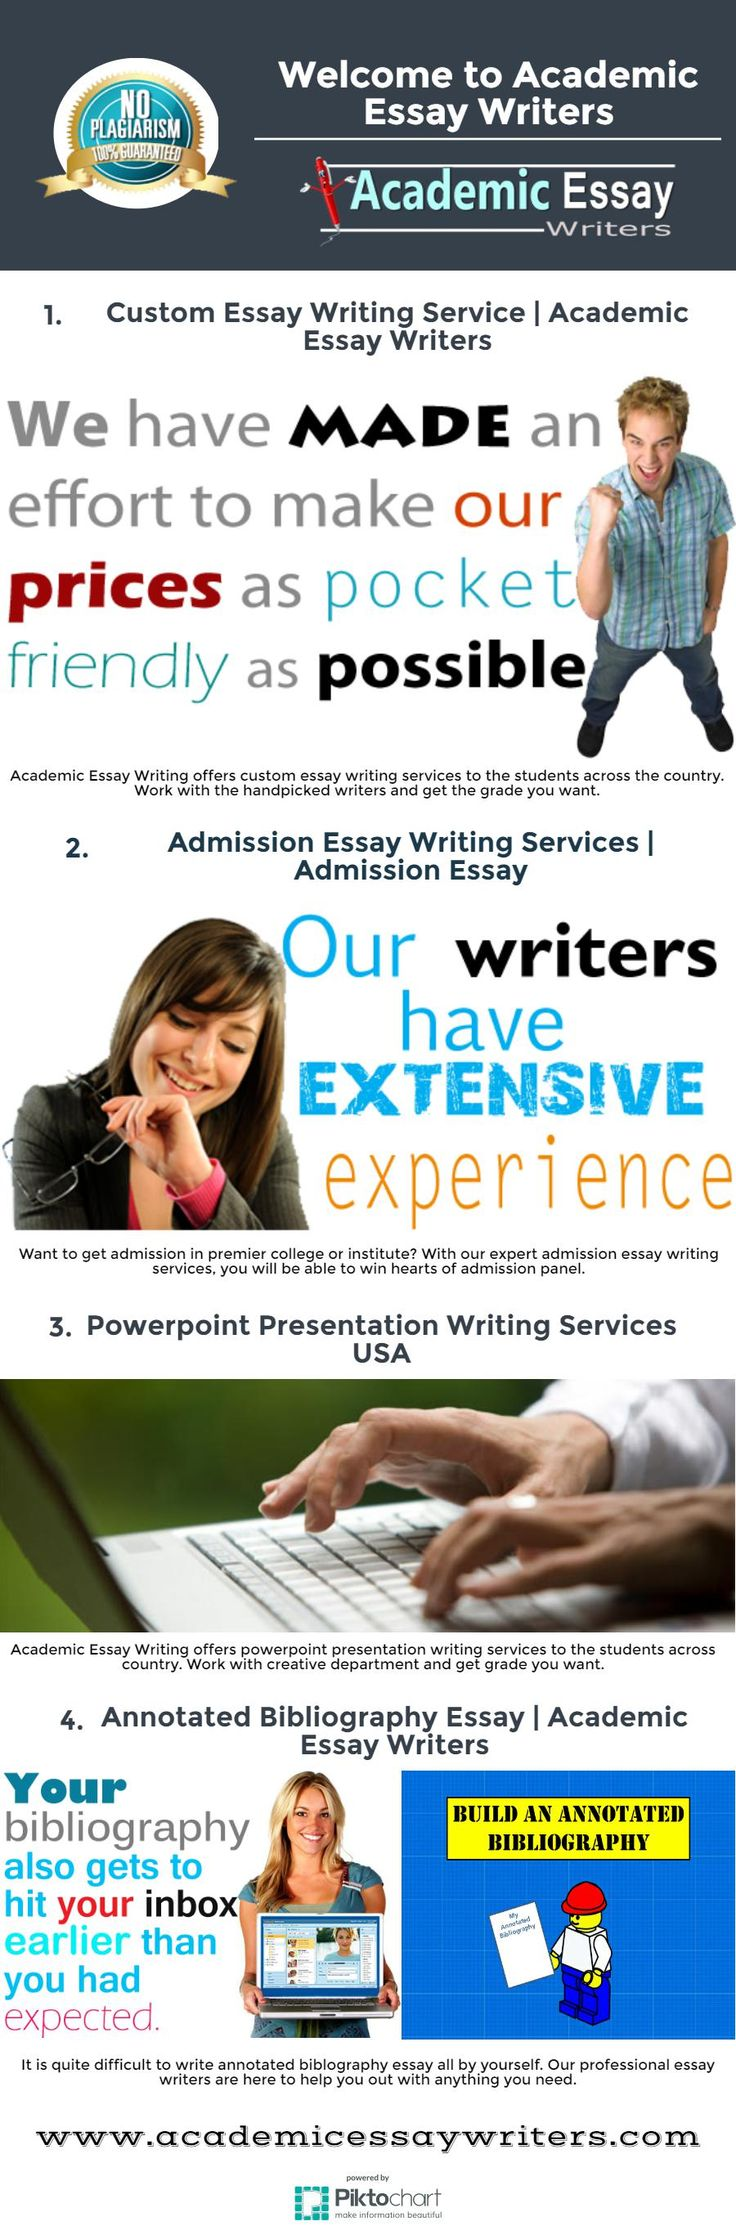 professional custom writing services Custom writing service will help you get an a easily professional academic essay writers specializing in more than 40 industries.